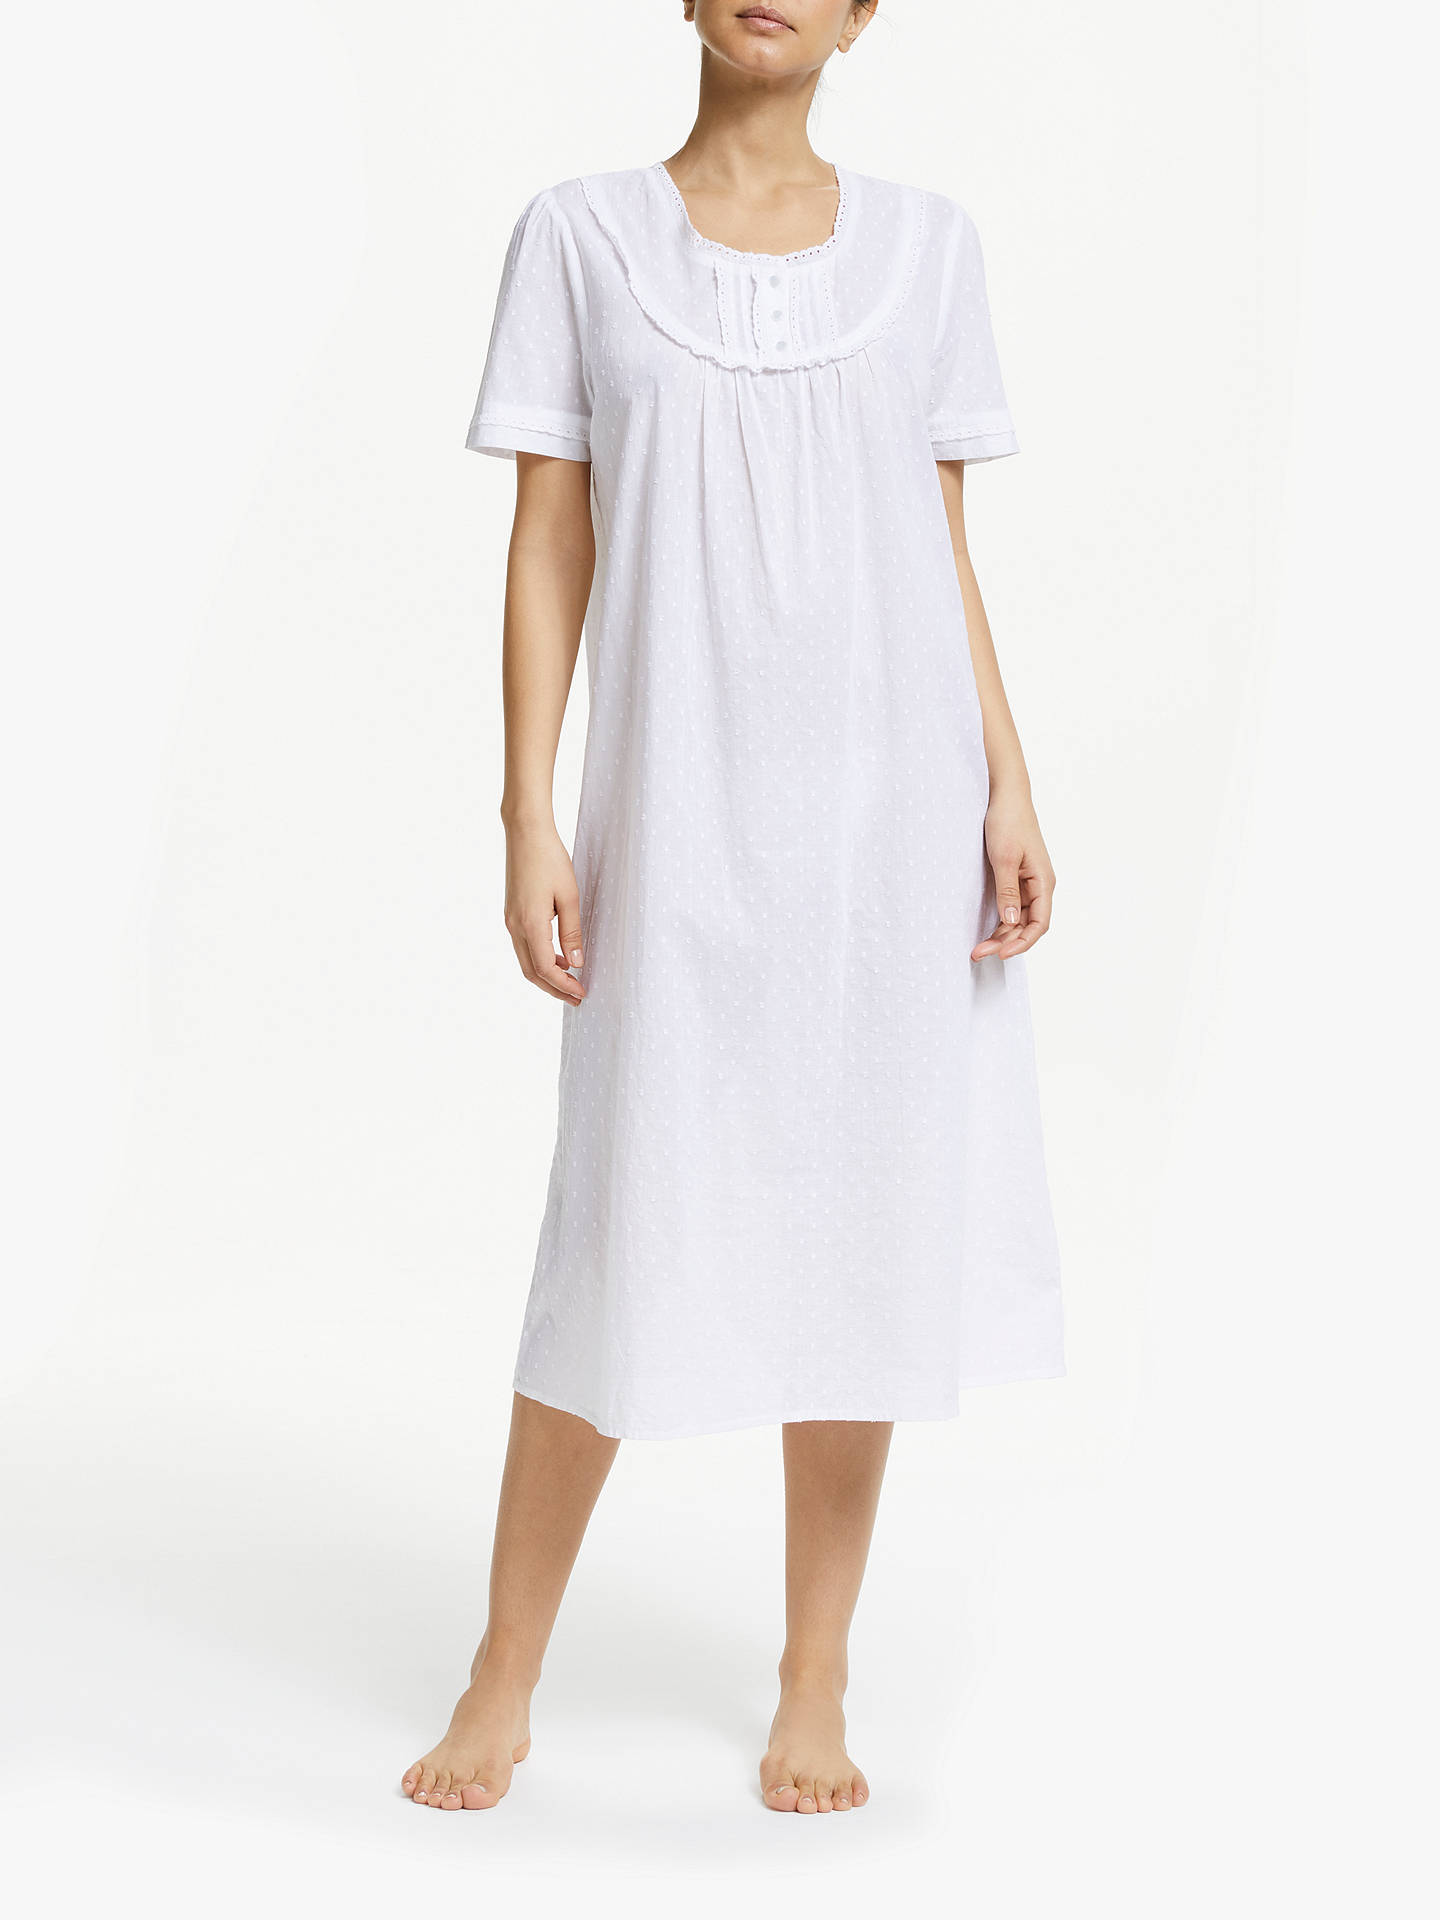 995b4a32a0 John Lewis   Partners Pilli Cotton Nightdress at John Lewis   Partners